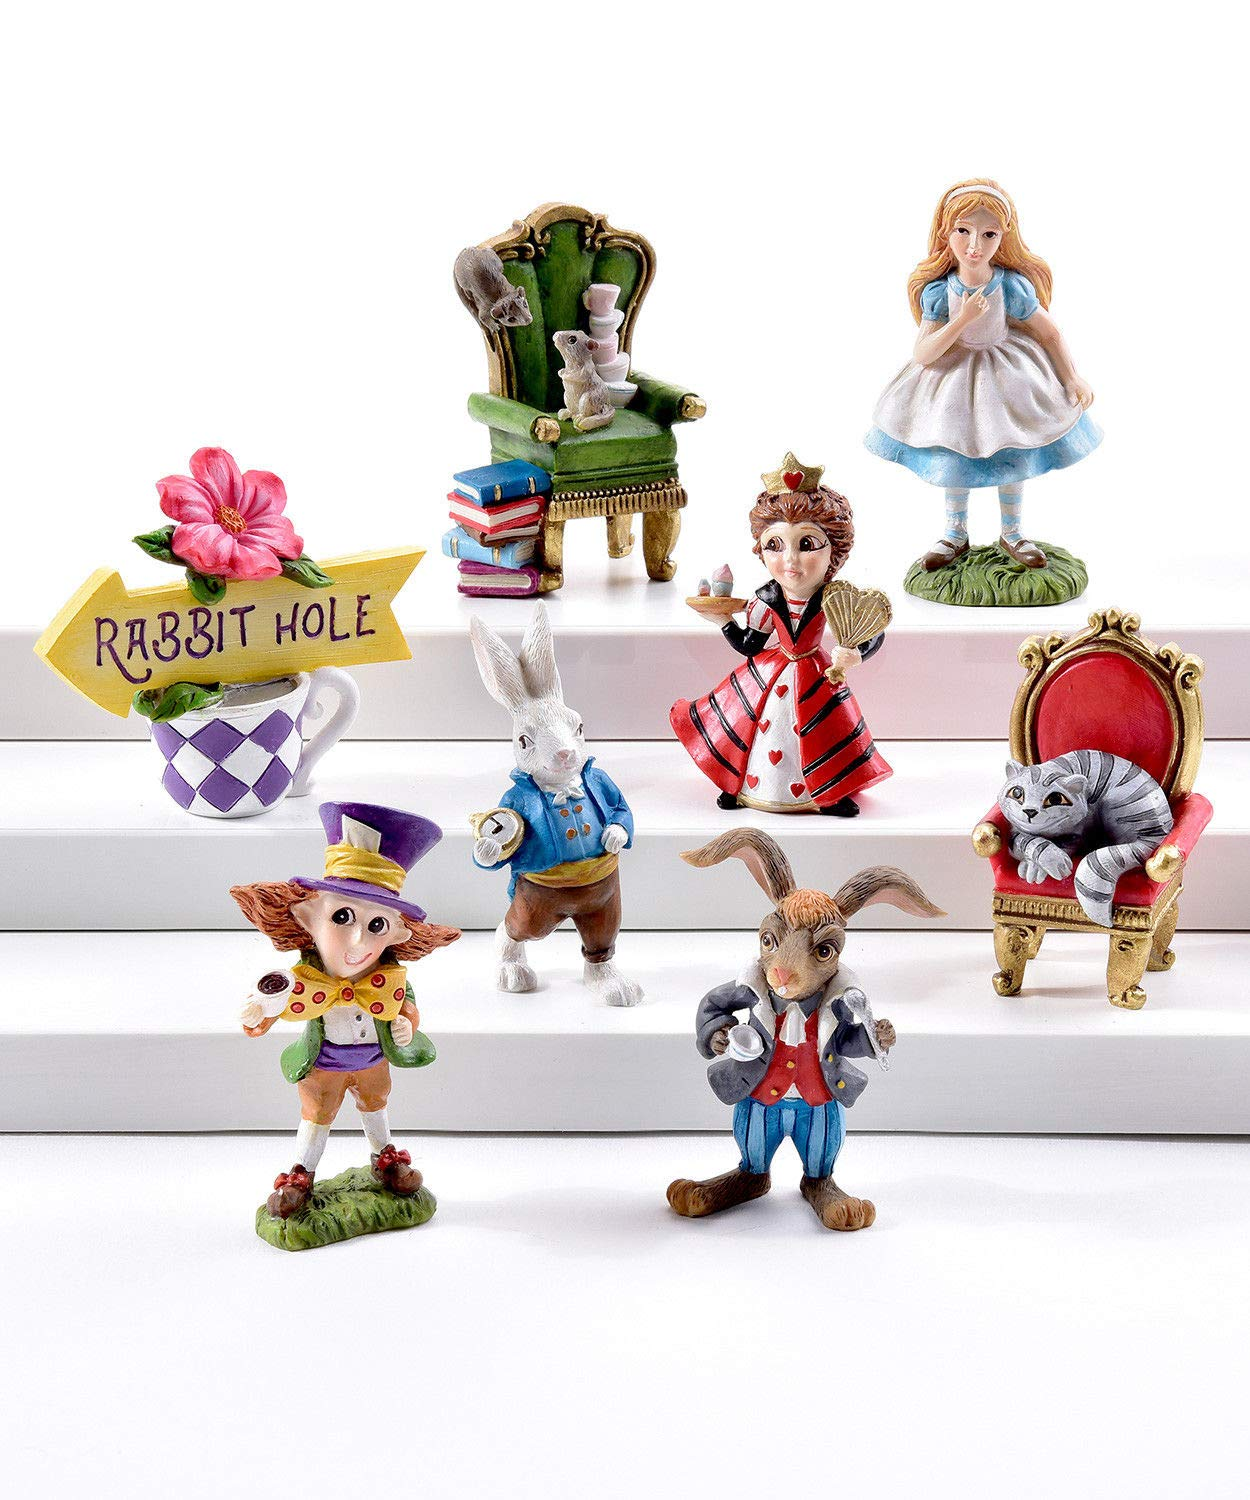 ShopForAllYou Figurines and Statues Fairy Garden Fun Miniature Dollhouse Alice in Wonderland Set 8 Pieces Christmas by AllStatues (Image #1)